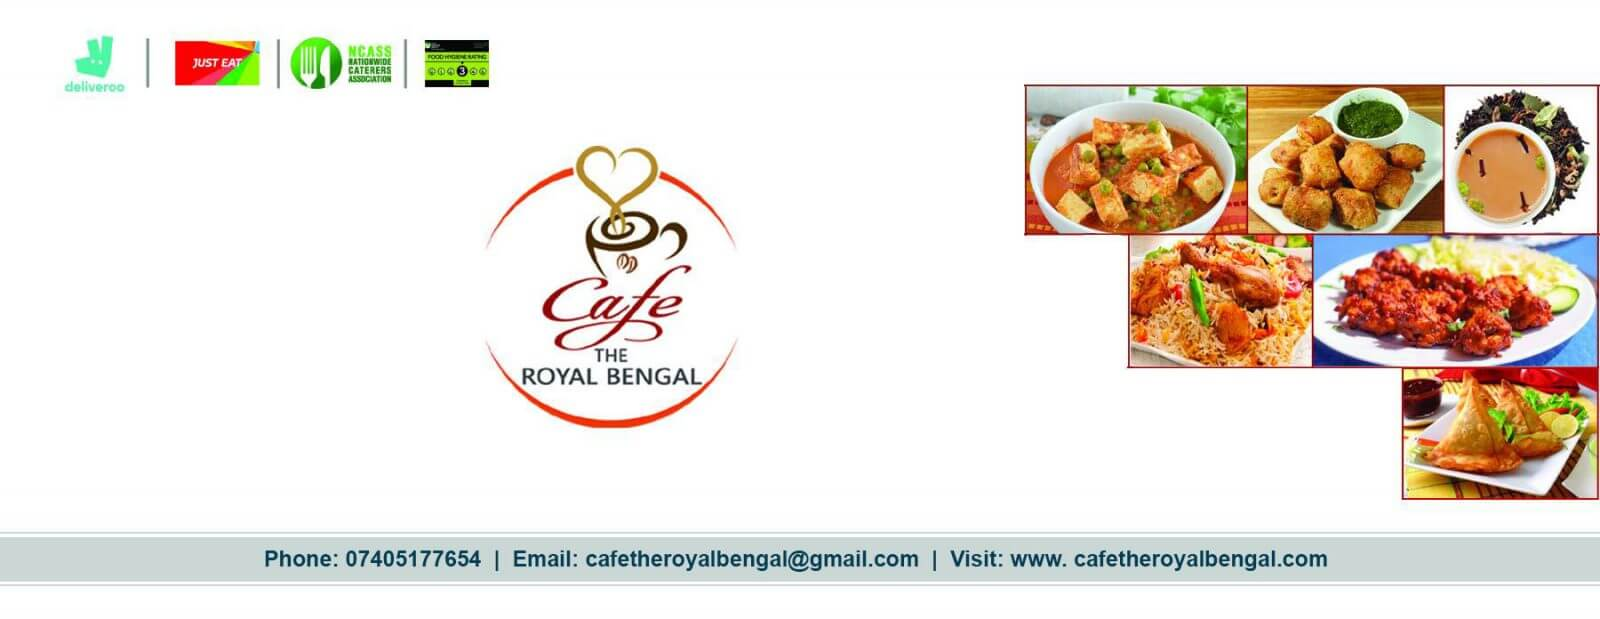 Cafe The Royal Bengal